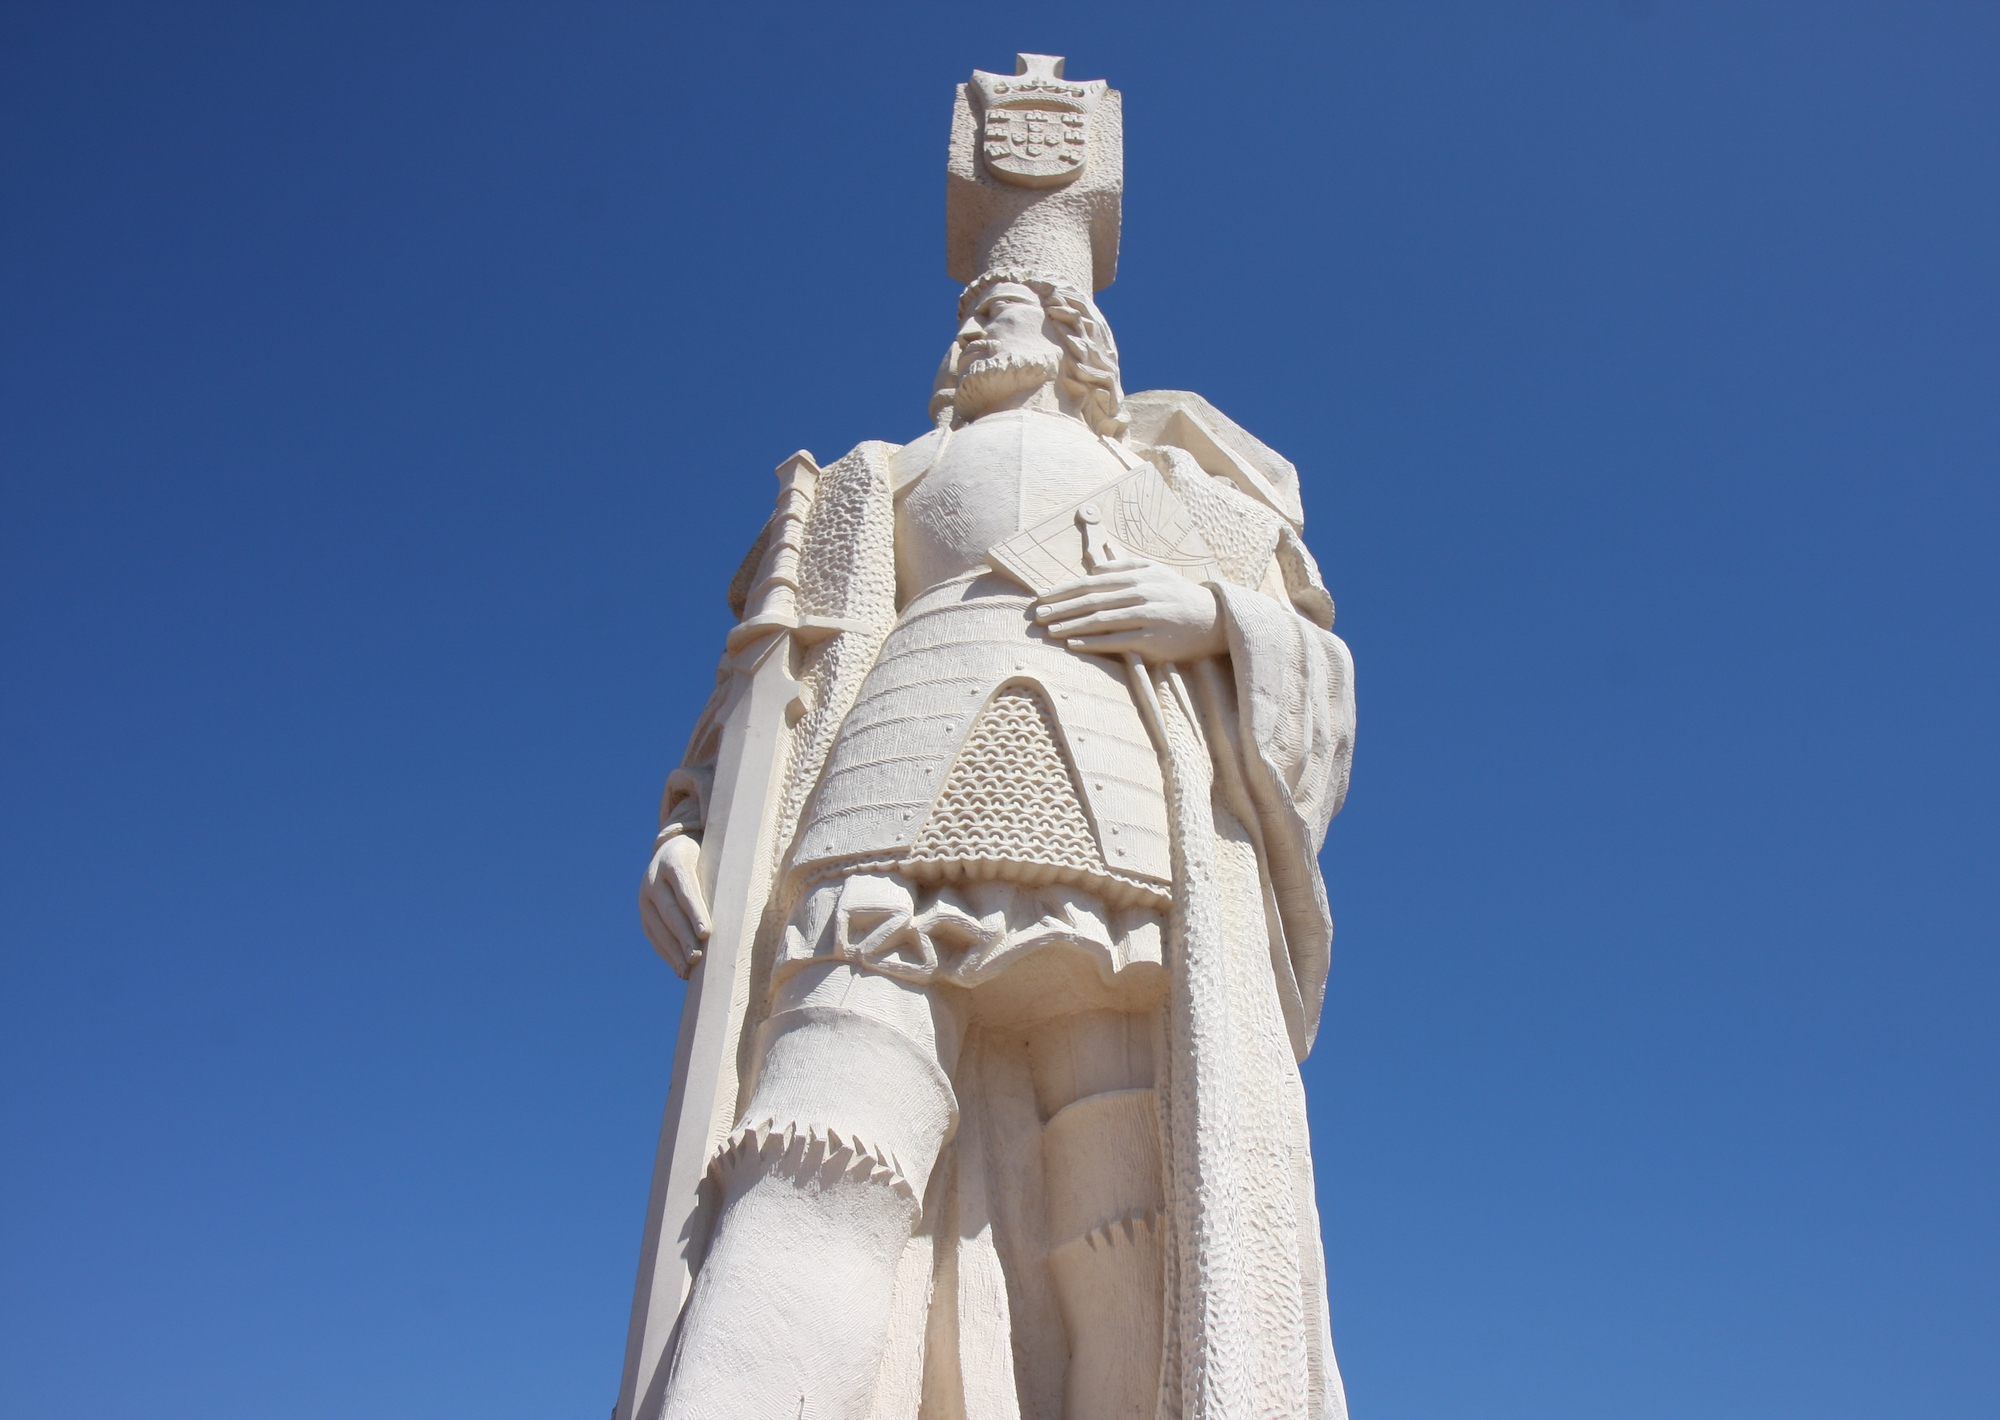 Steven Newcomb: Spanish statue on Kumeyaay Nation territory based on a lie